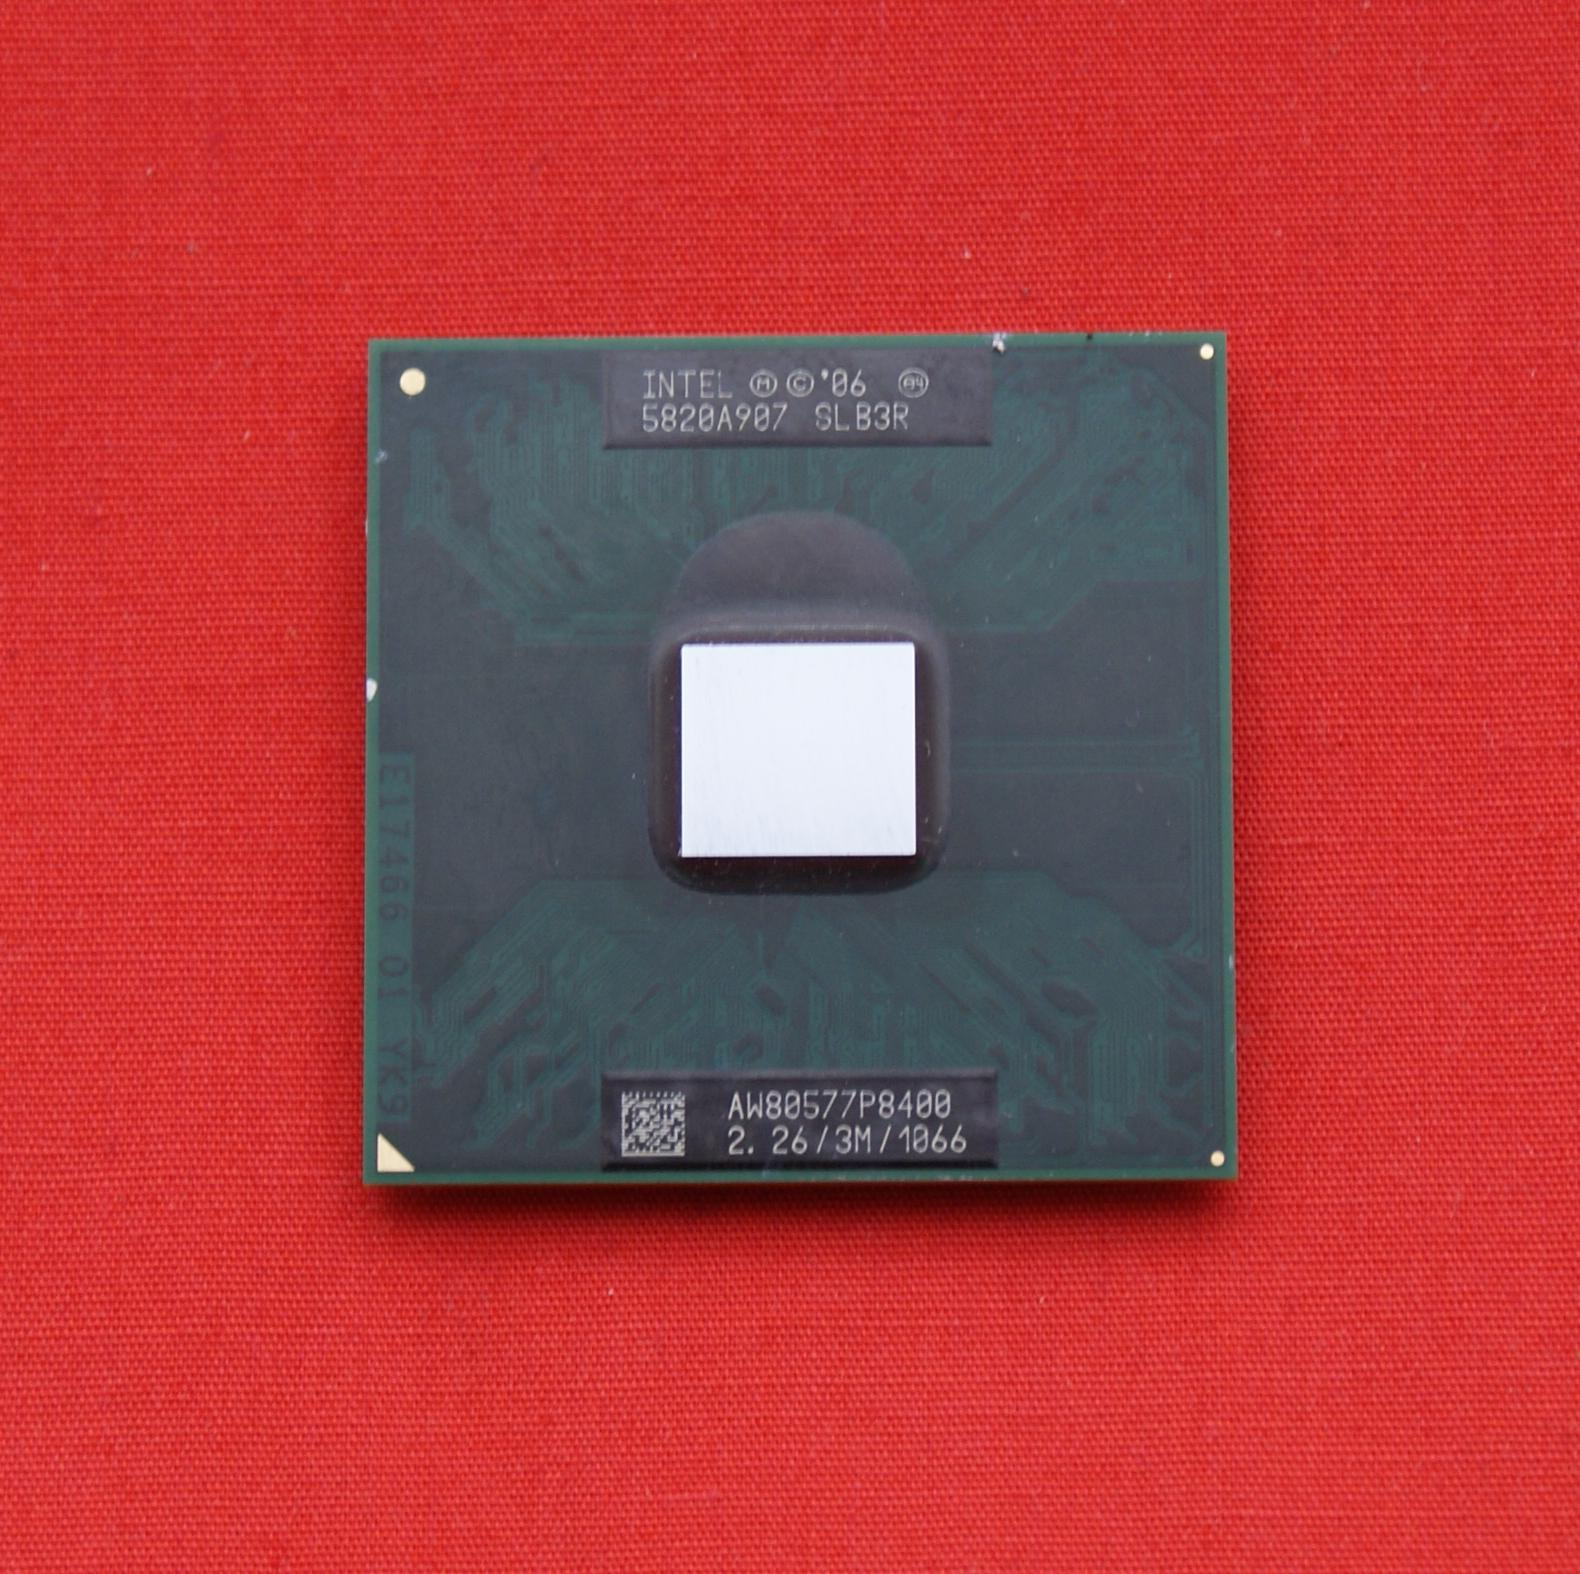 Процессор двухъядерный Intel Core 2 Duo P8400 (2.267GHz/3Mb/1066), SLB3R